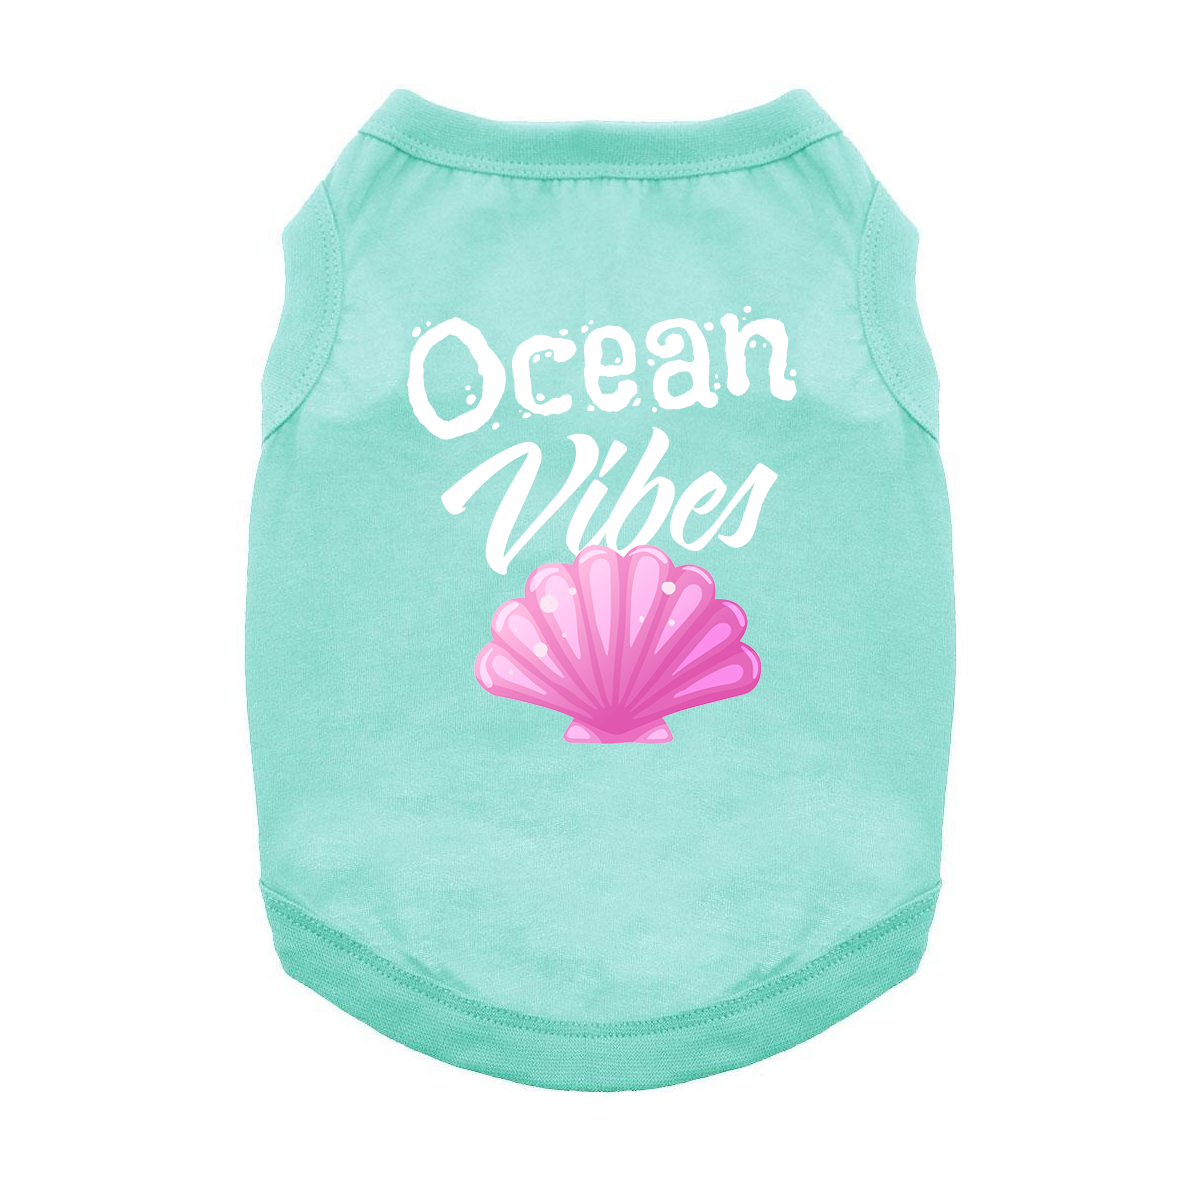 Ocean Vibes Dog Shirt - Teal